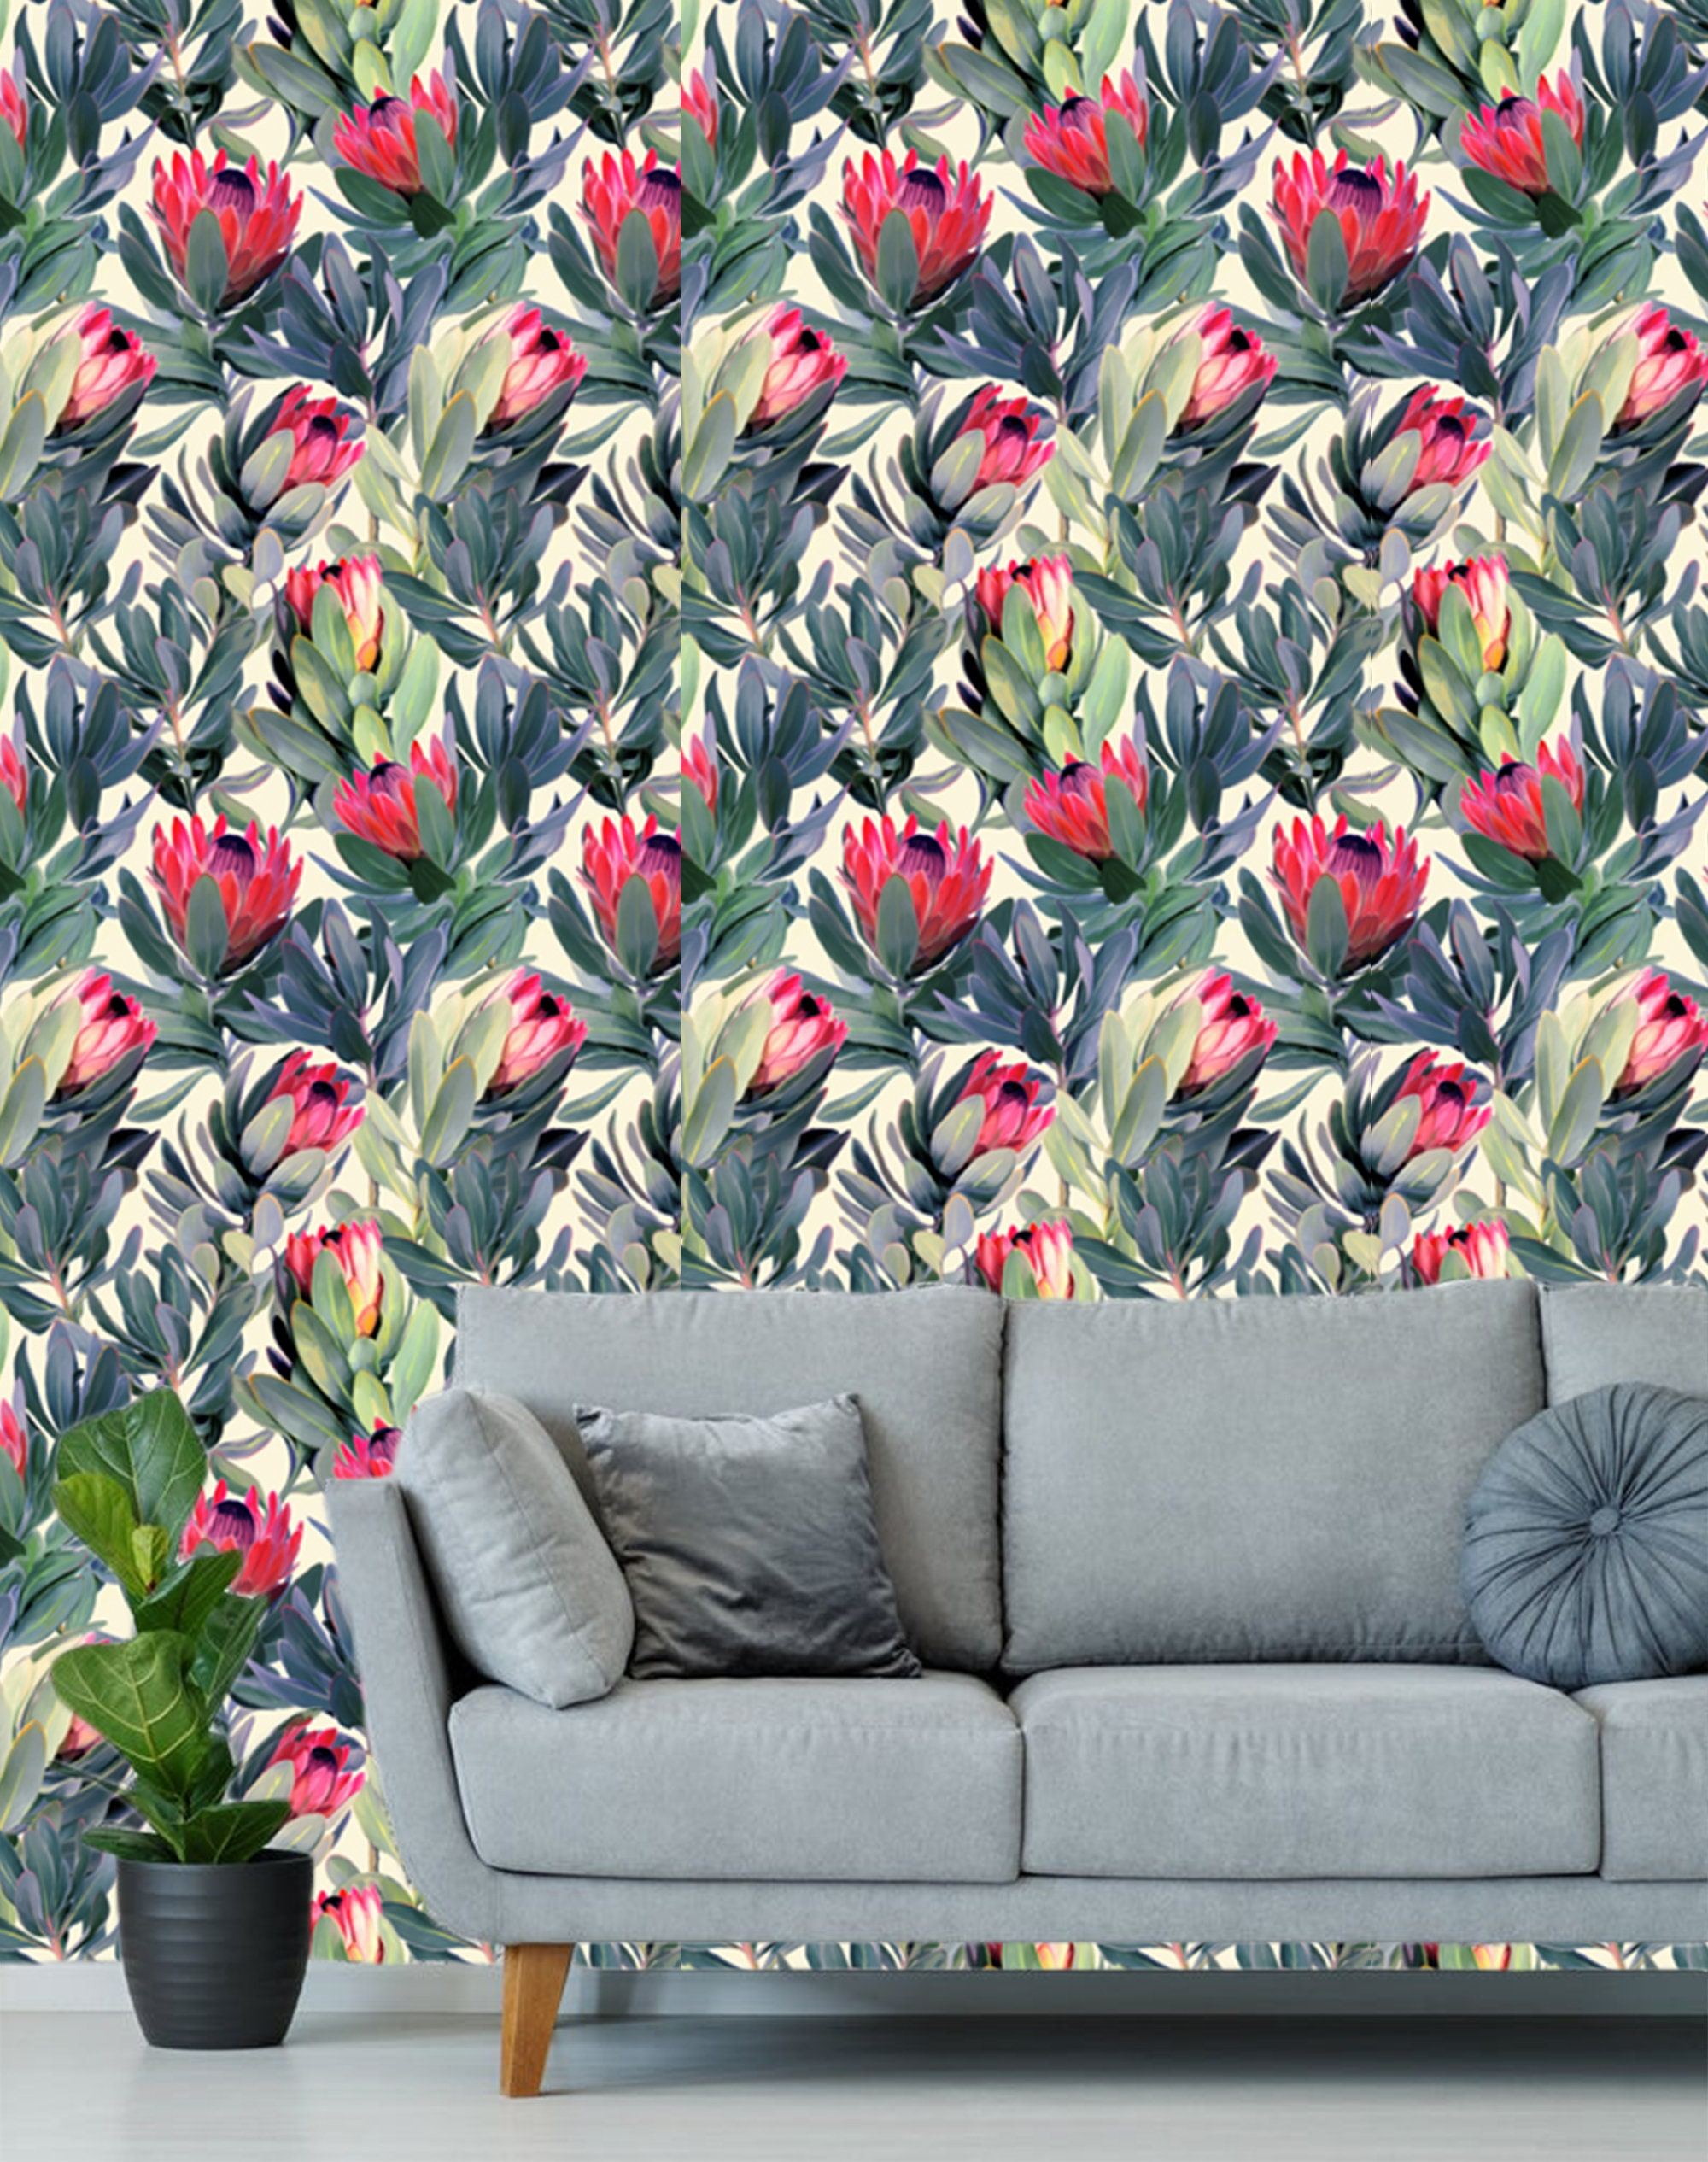 Large Pink Floral Wallpaper Removable, Traditional ...